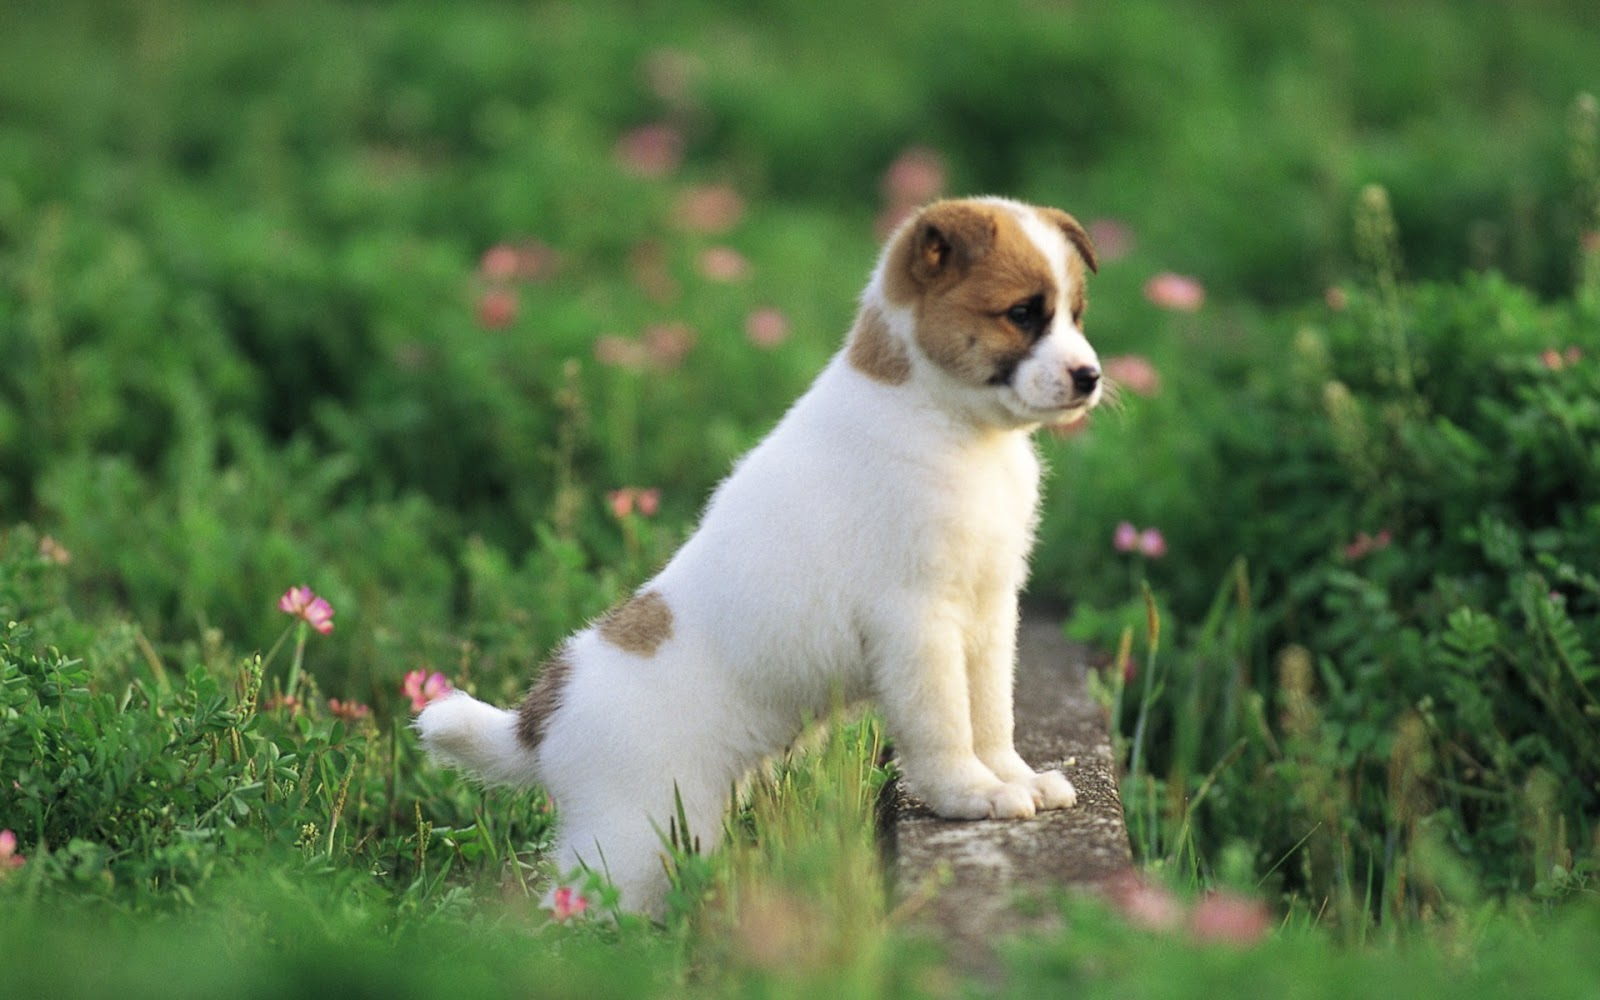 Cute Dog Baby Dog Hd Wallpapers Free Download 1080p